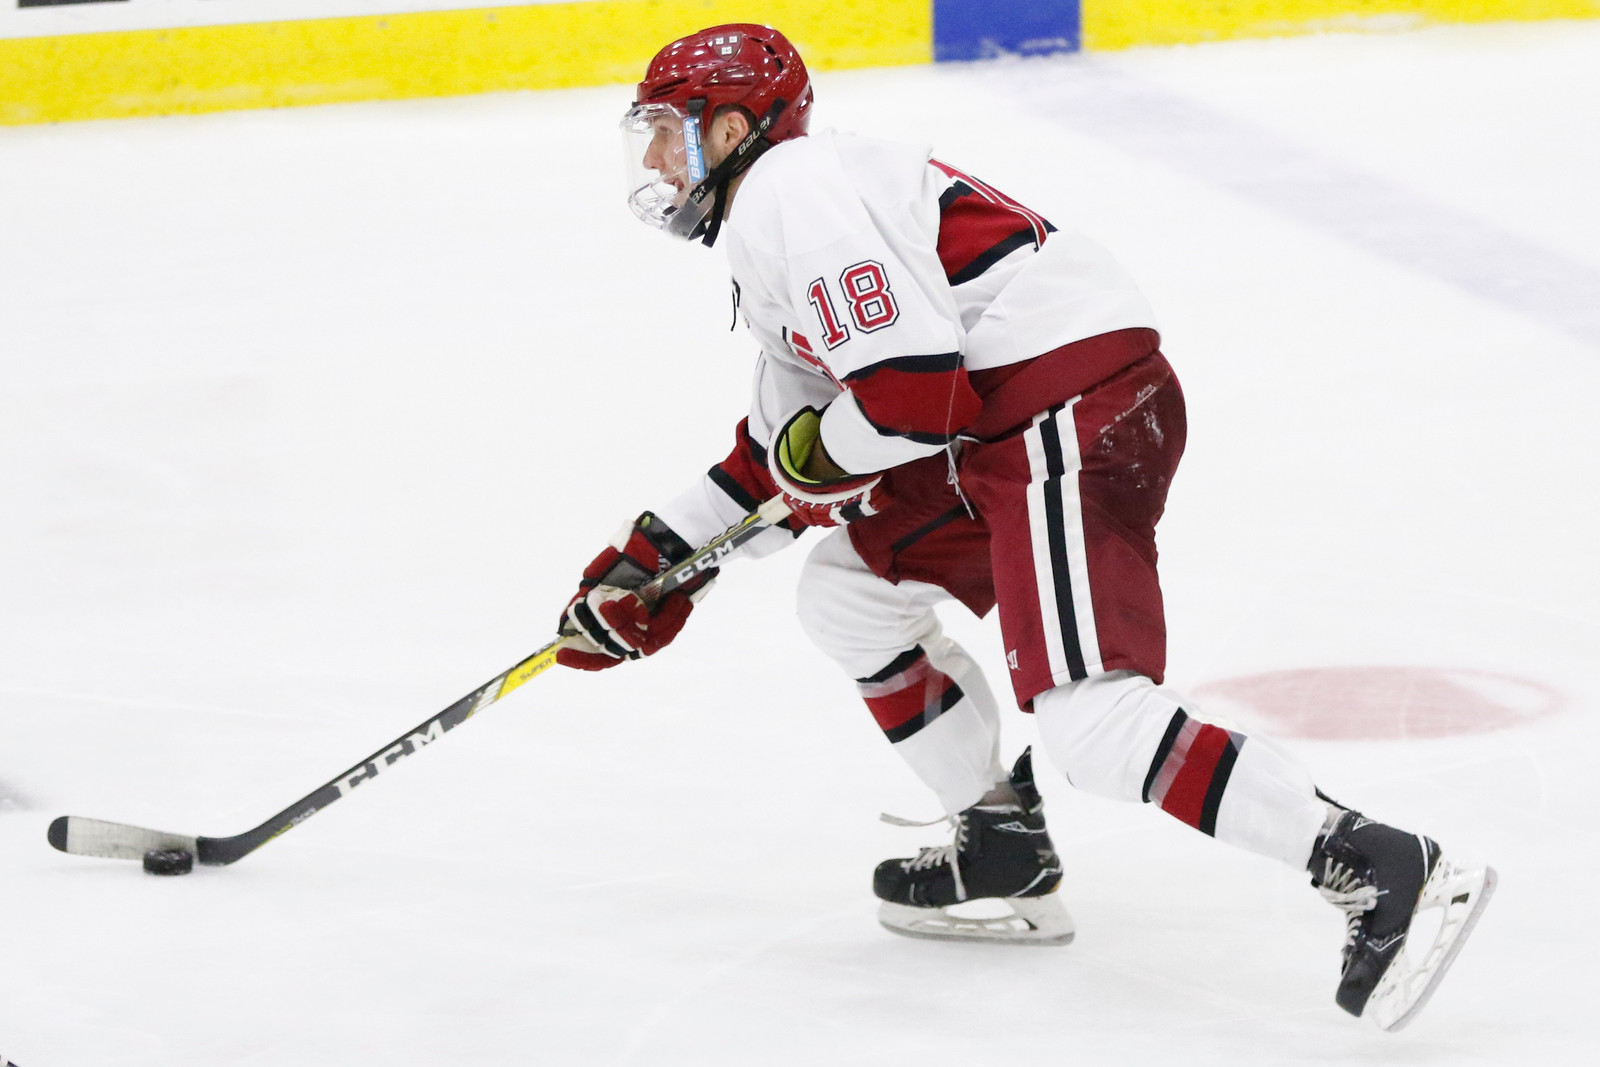 The Crimson looks to rebound after a disappointing performance against Cornell last week. A victory on Tuesday night would send the squad into the four-week winter recess above .500.